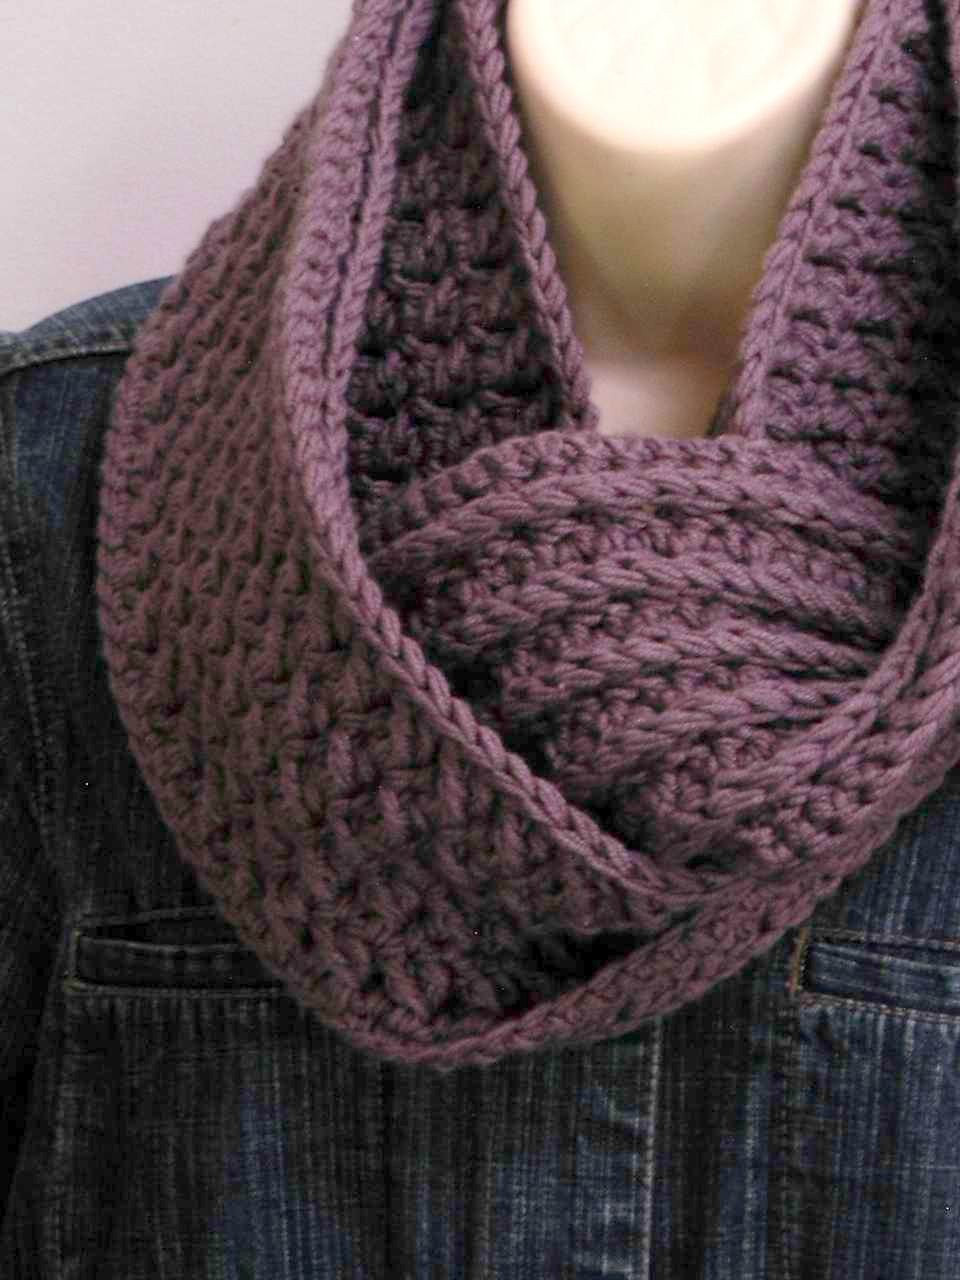 Crochet Scarf Lovely Crochet Scarf Pattern Textured Cowl Crochet Pattern No 501 Of Incredible 48 Images Crochet Scarf